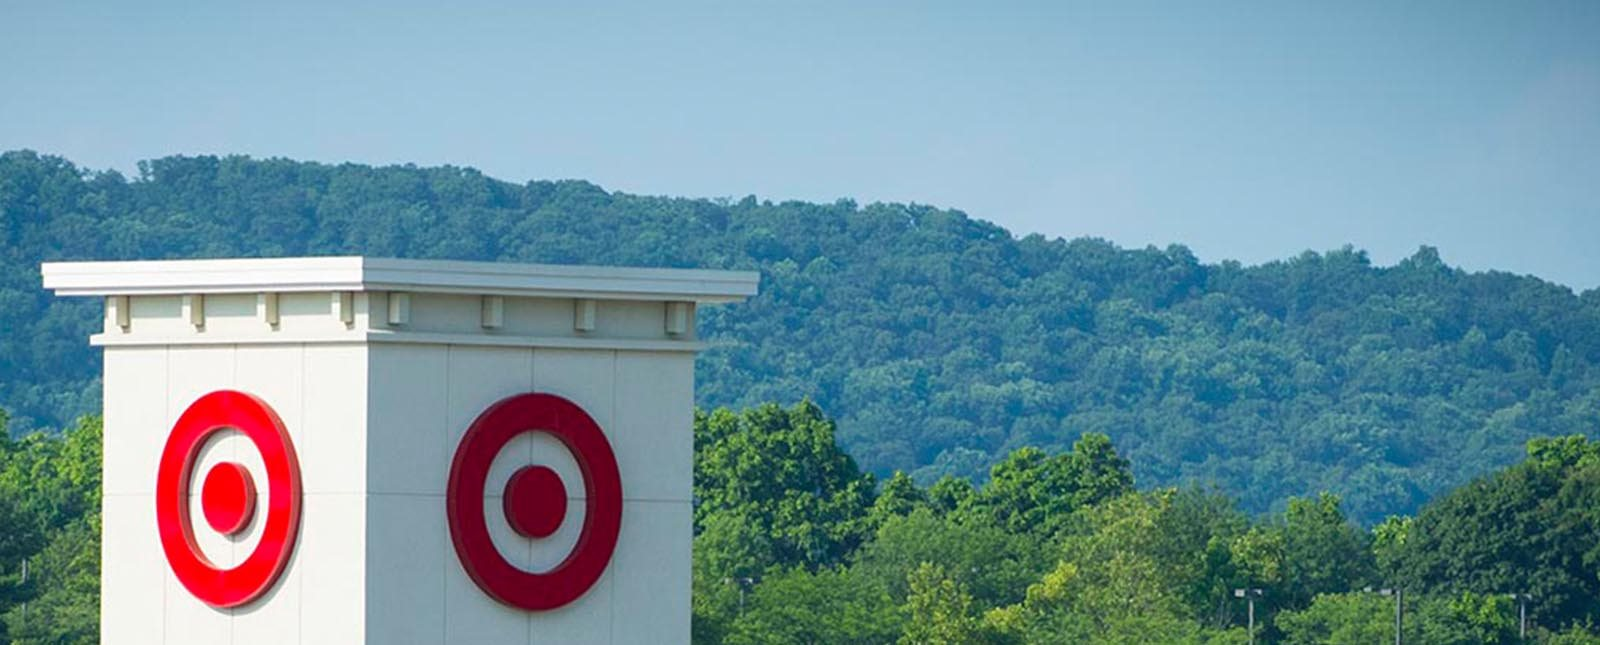 Target near The Haven luxury apartments in Malvern, PA